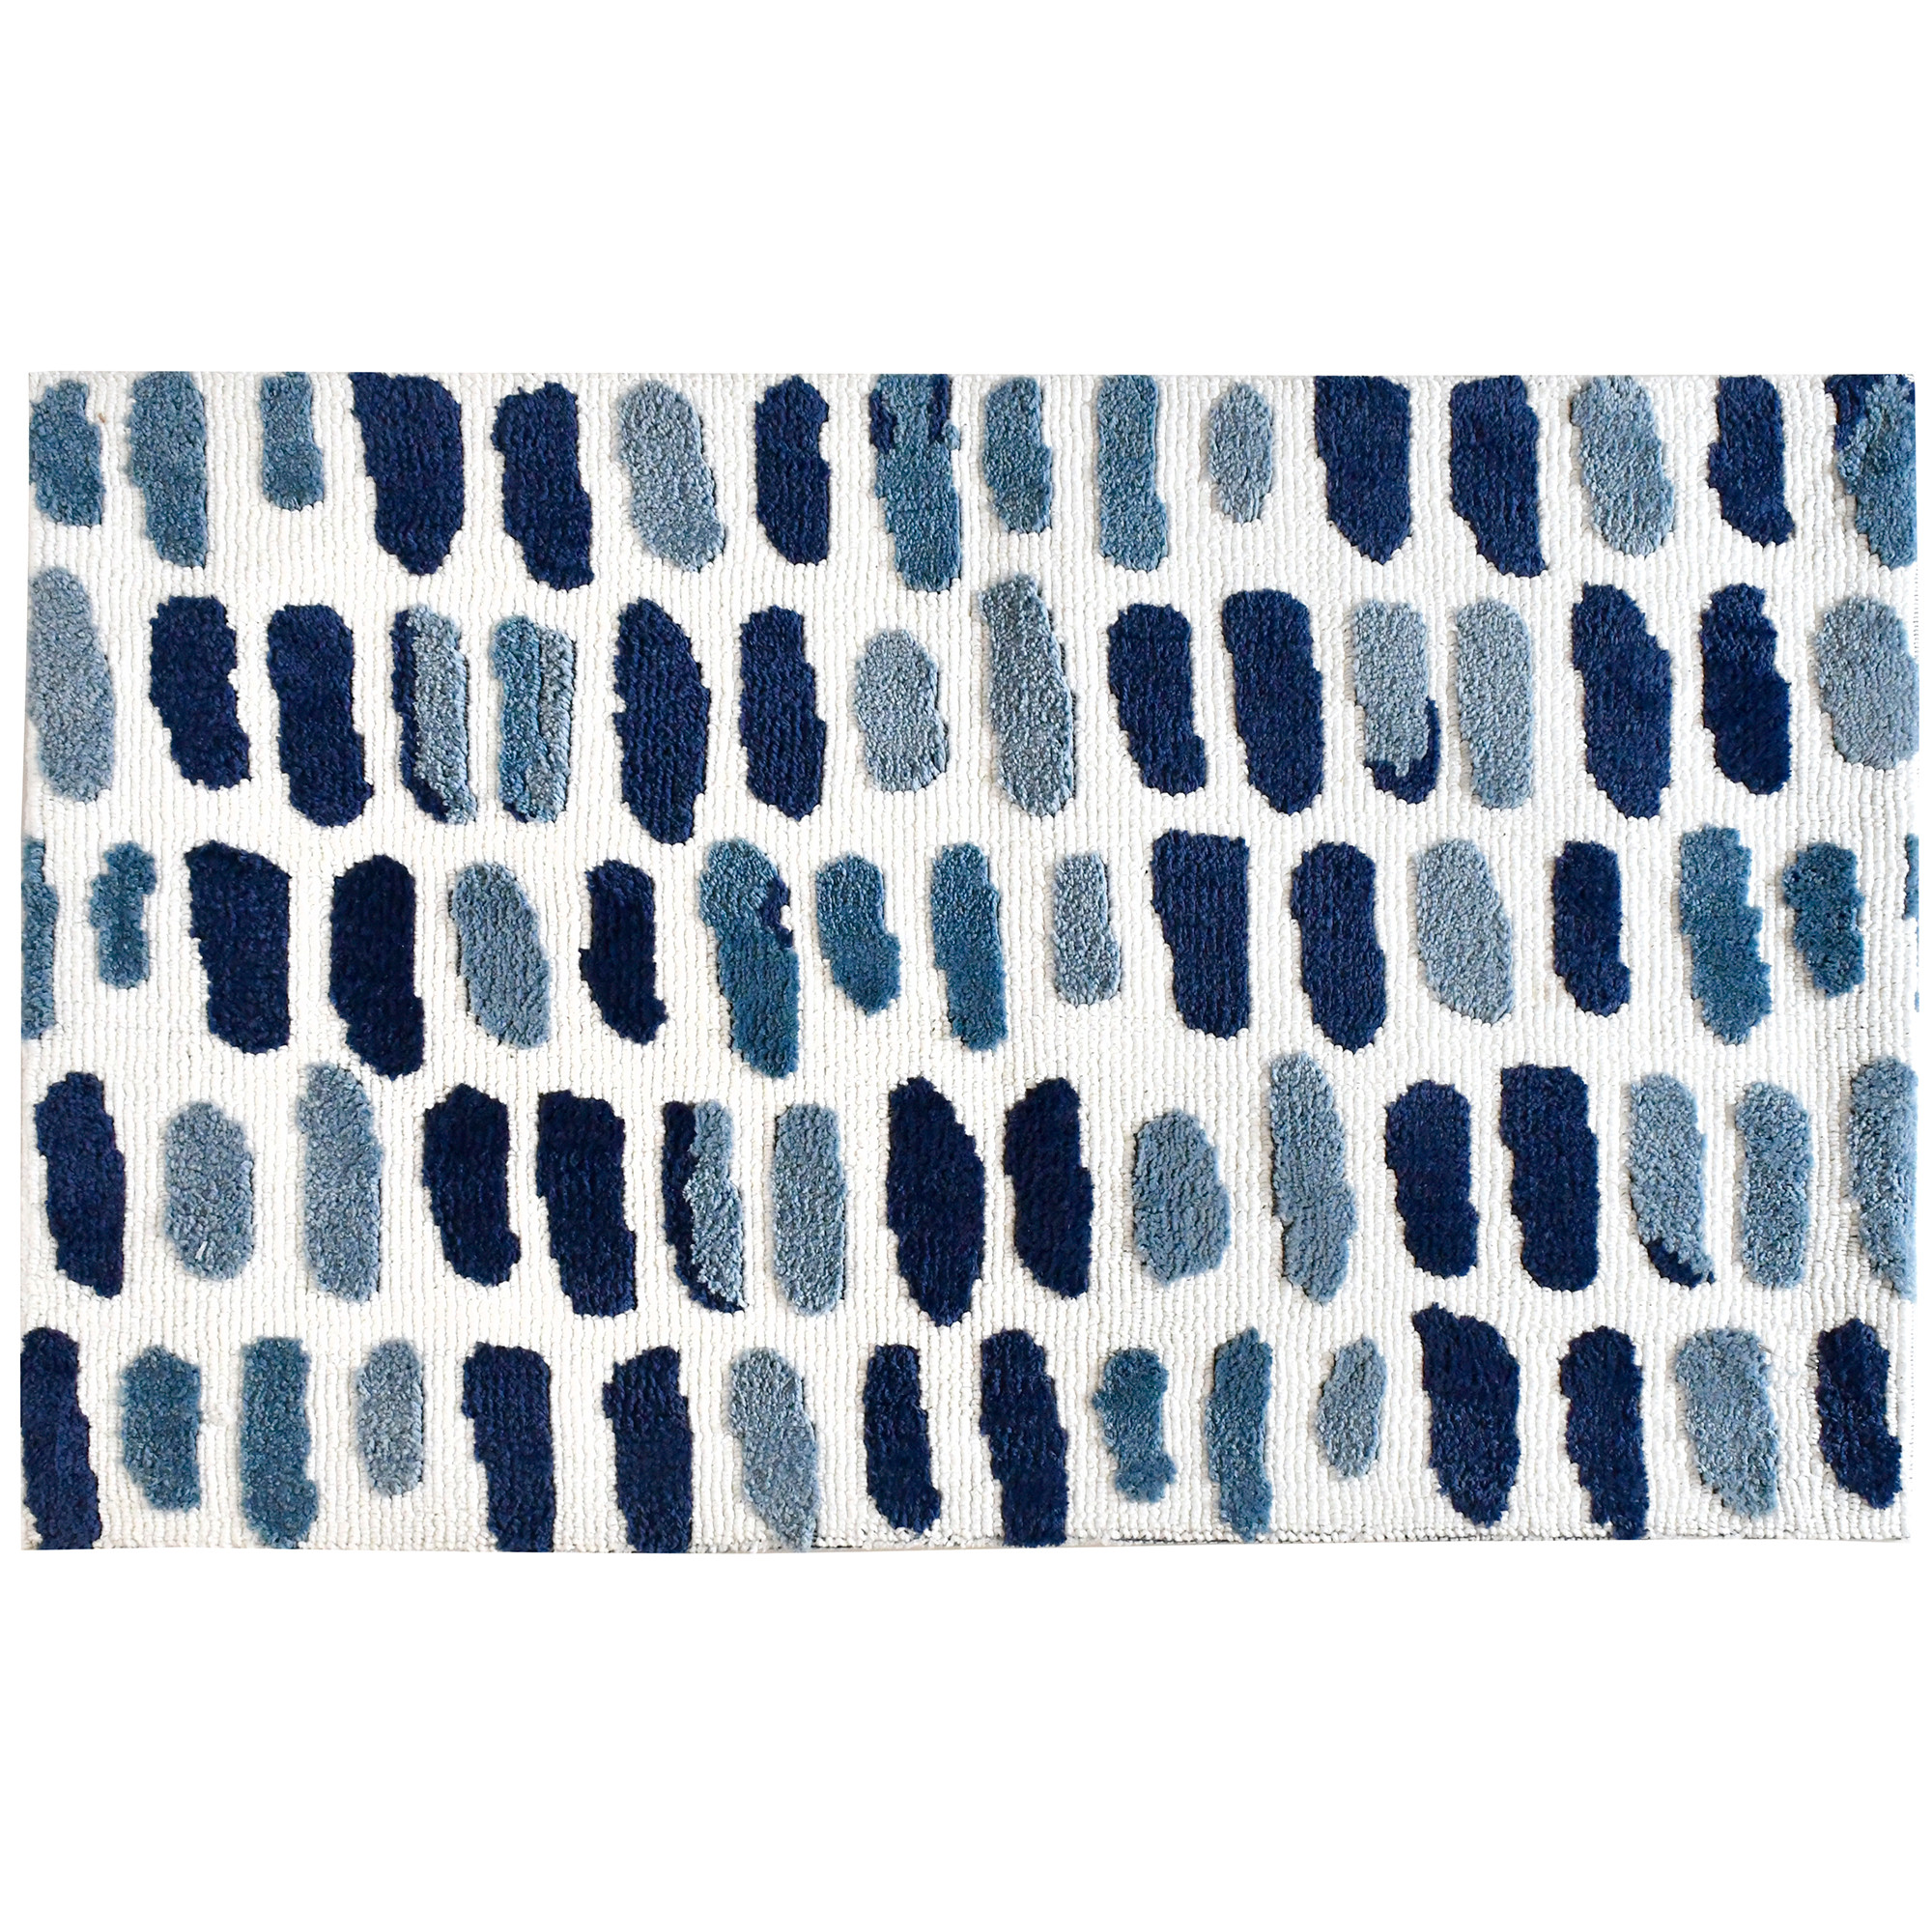 Hues of the Mediterranean are captured in their beauty and harnessed on this Simple Spaces by Jellybean® accent rug. The cool colors and easy pattern of this rug will warm up the area of your choice.